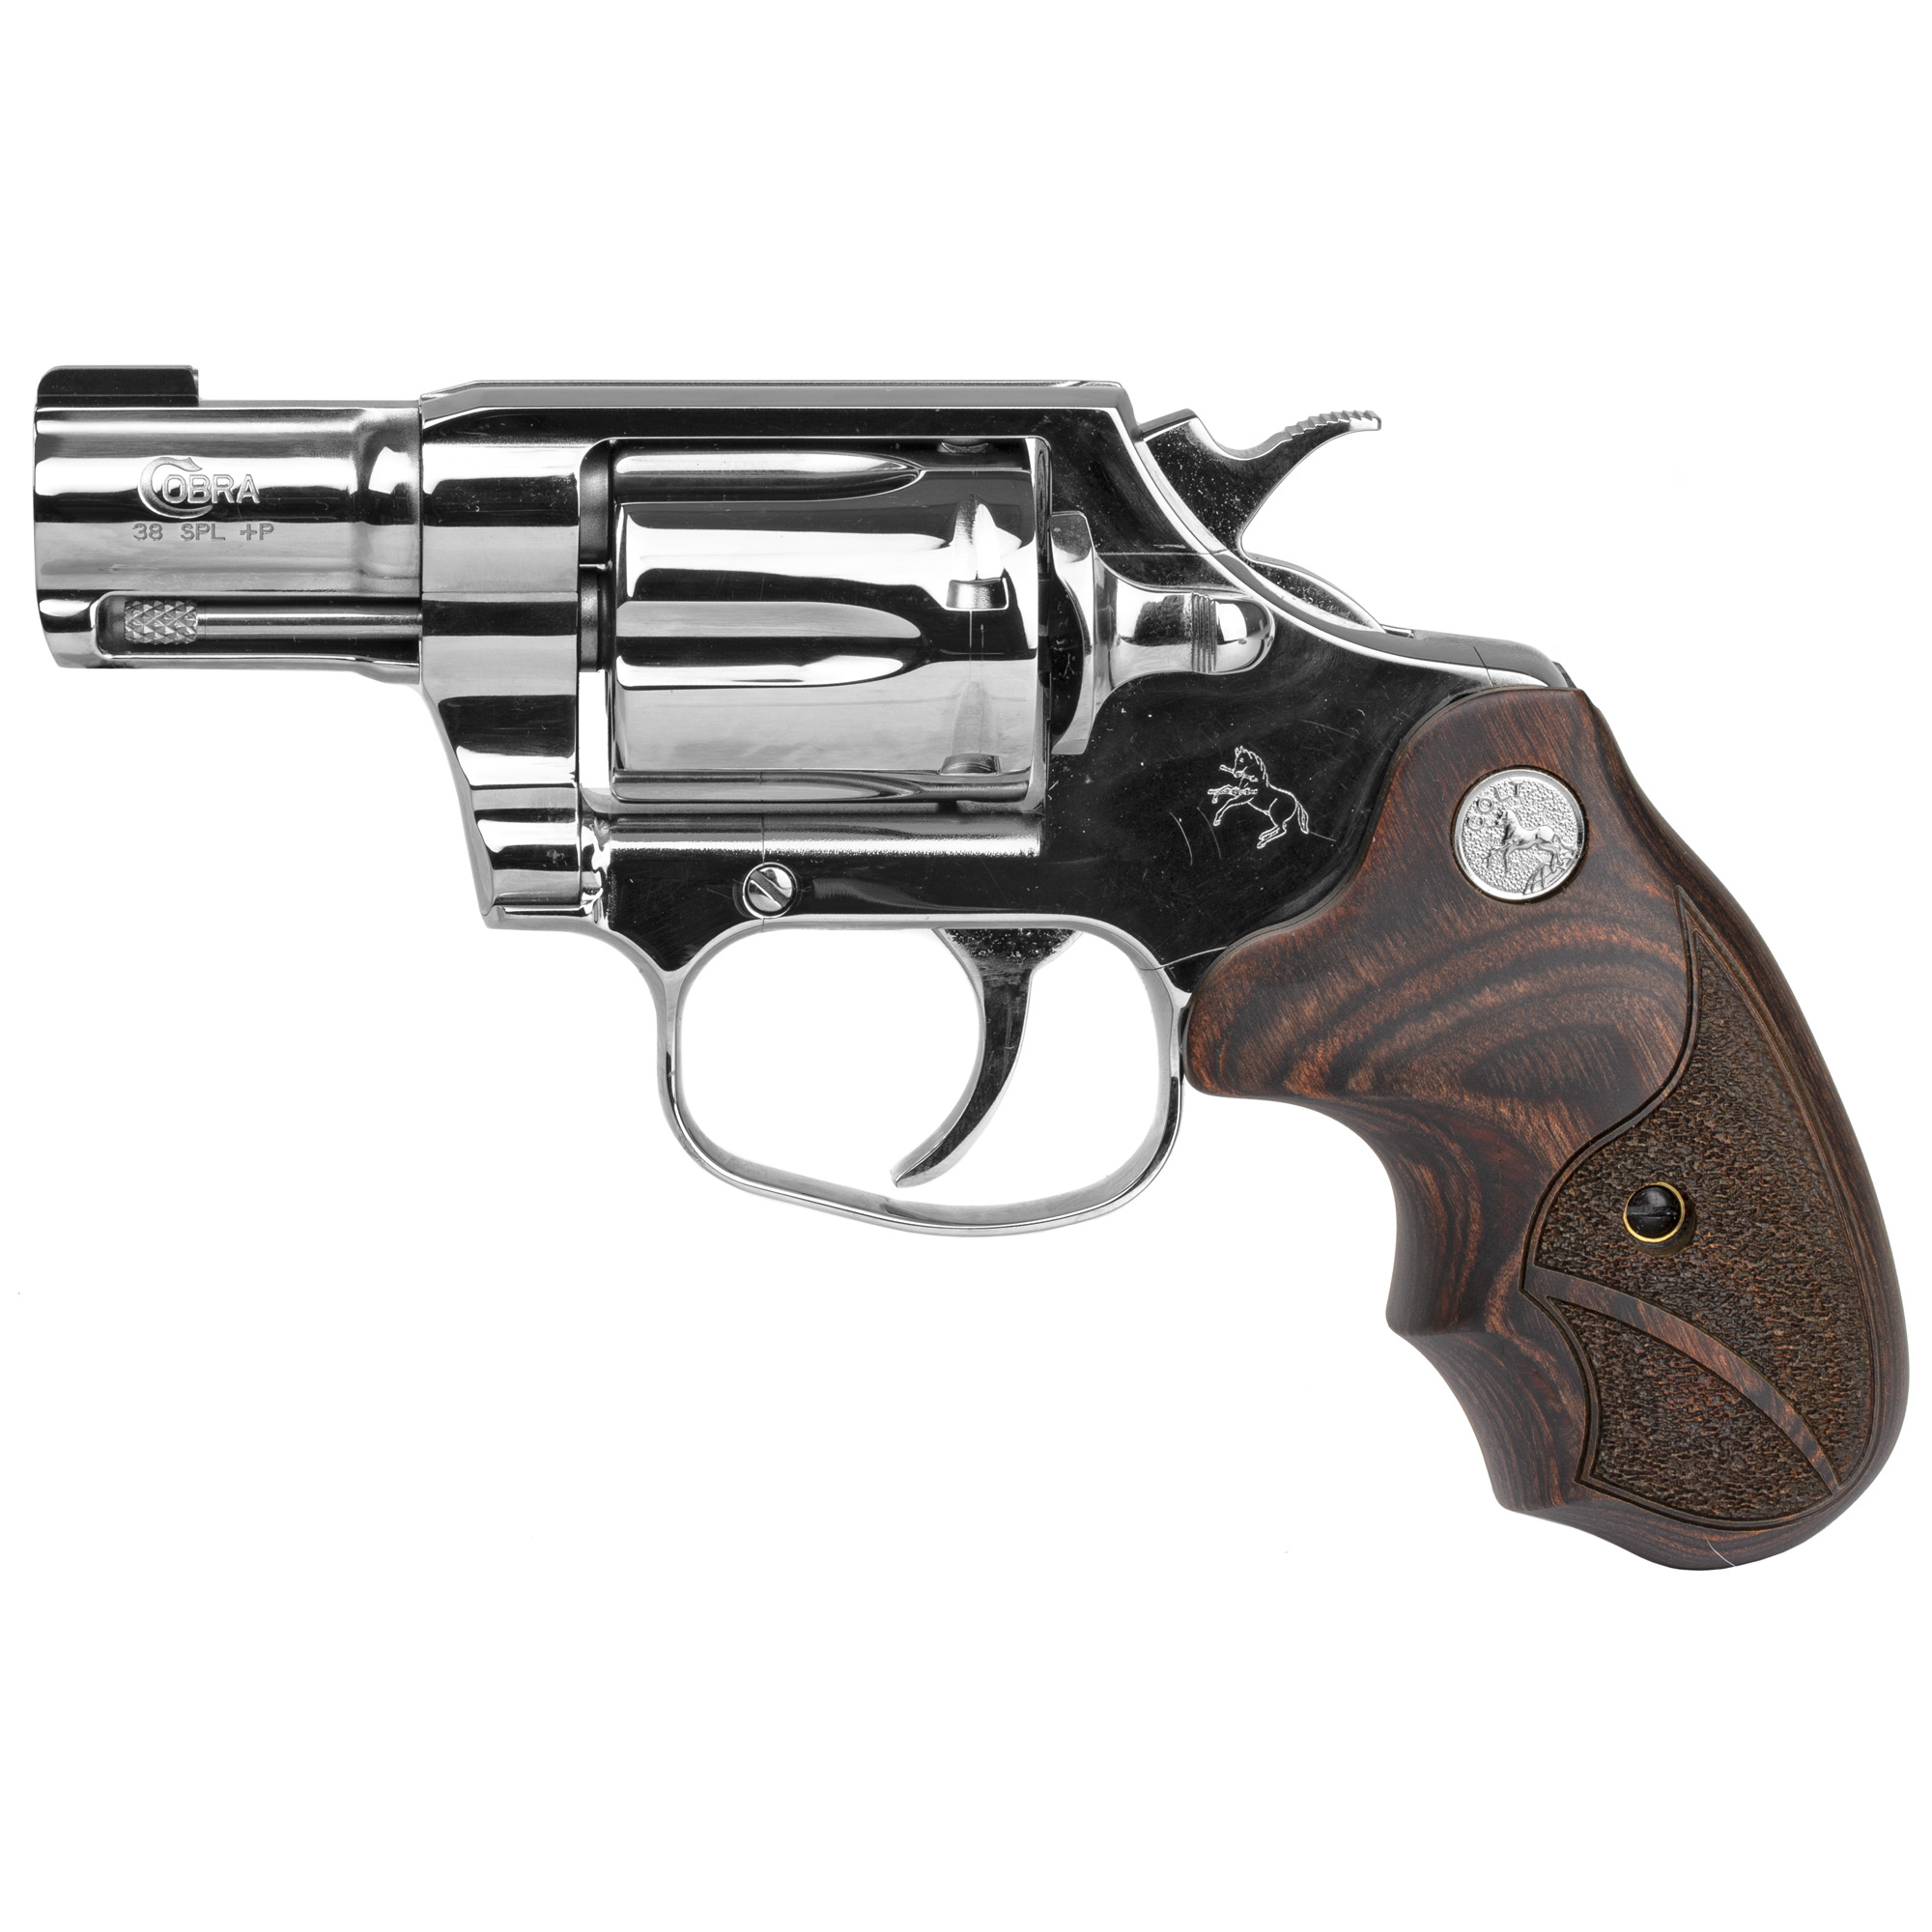 "The Colt Cobra(R) marks Colt's triumphant return to the world of double-action revolvers. This special model takes back Colt's heritage of delivering a mirror polished Stainless Steel revolver. A shooter as well as a showpiece"" the Bright Cobra is chambered in .38 Special and is +P capable. The Walnut Medallion grips and Brass Bead front sight help make it easy and enjoyable to shoot."